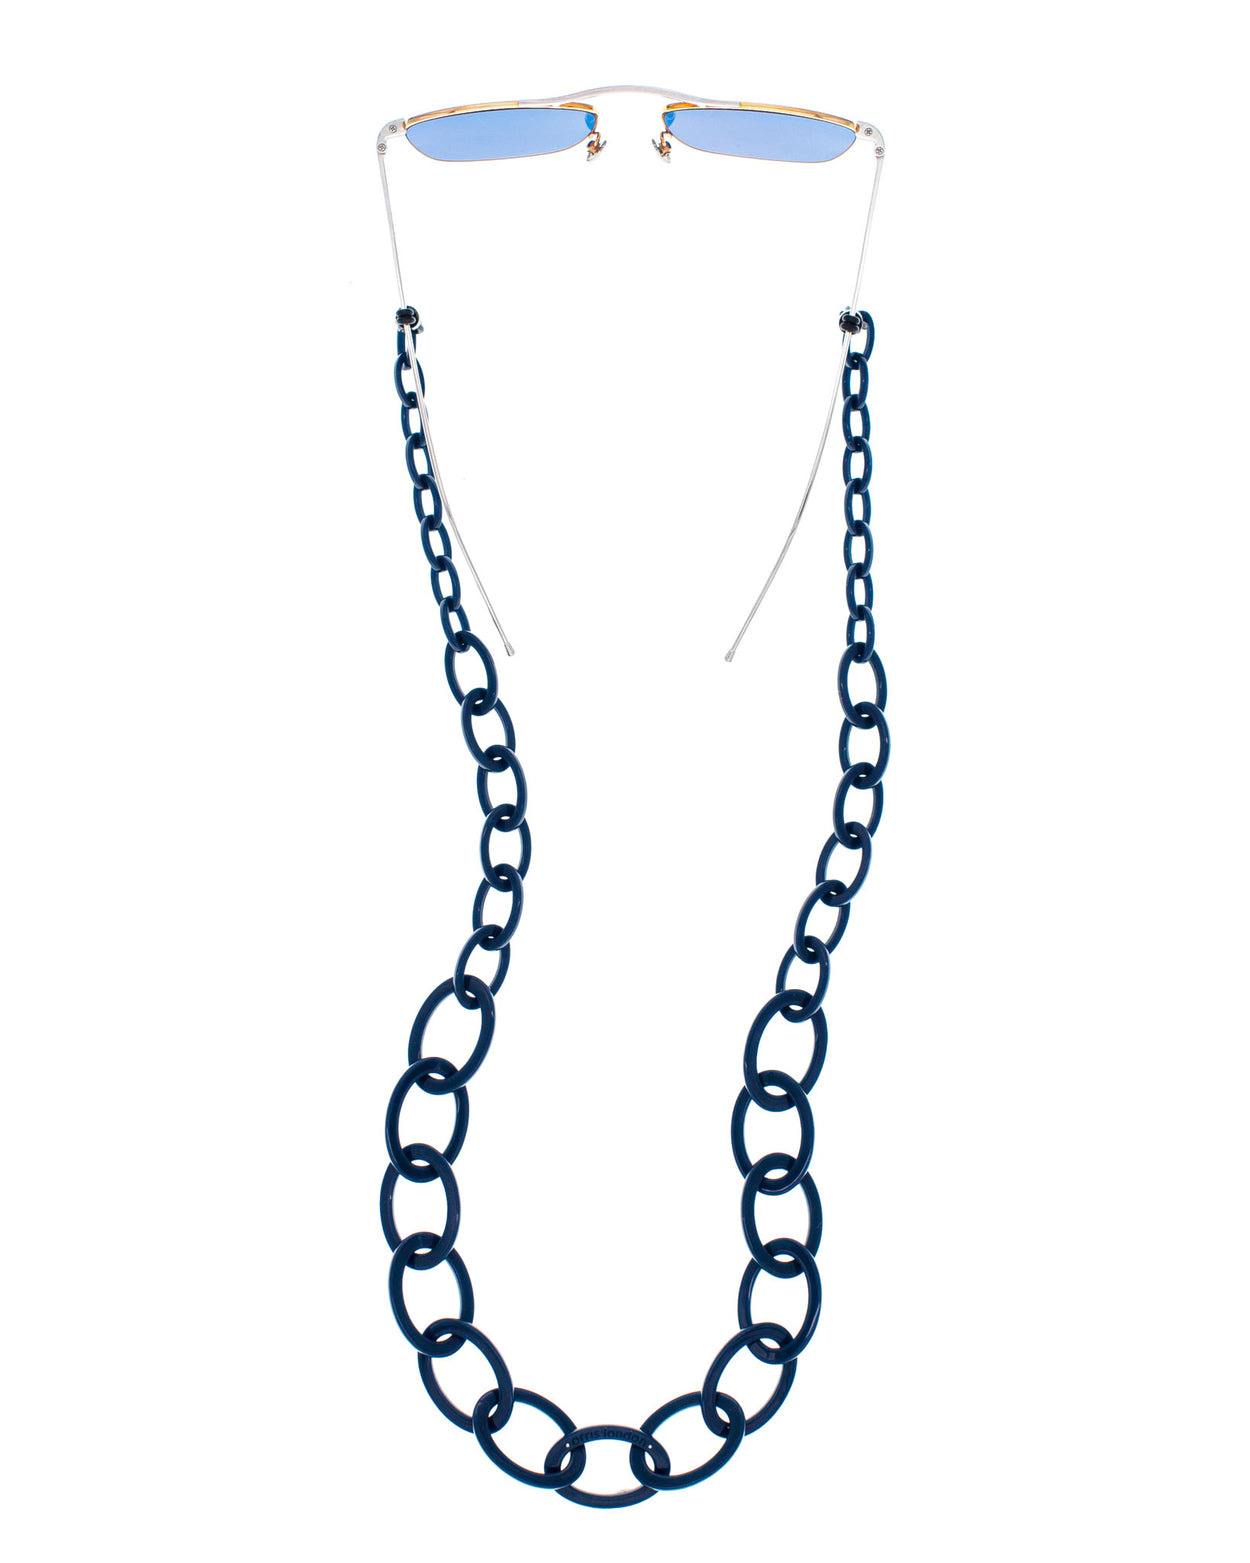 Smiley Chain | Navy Blue | Glasses Chain